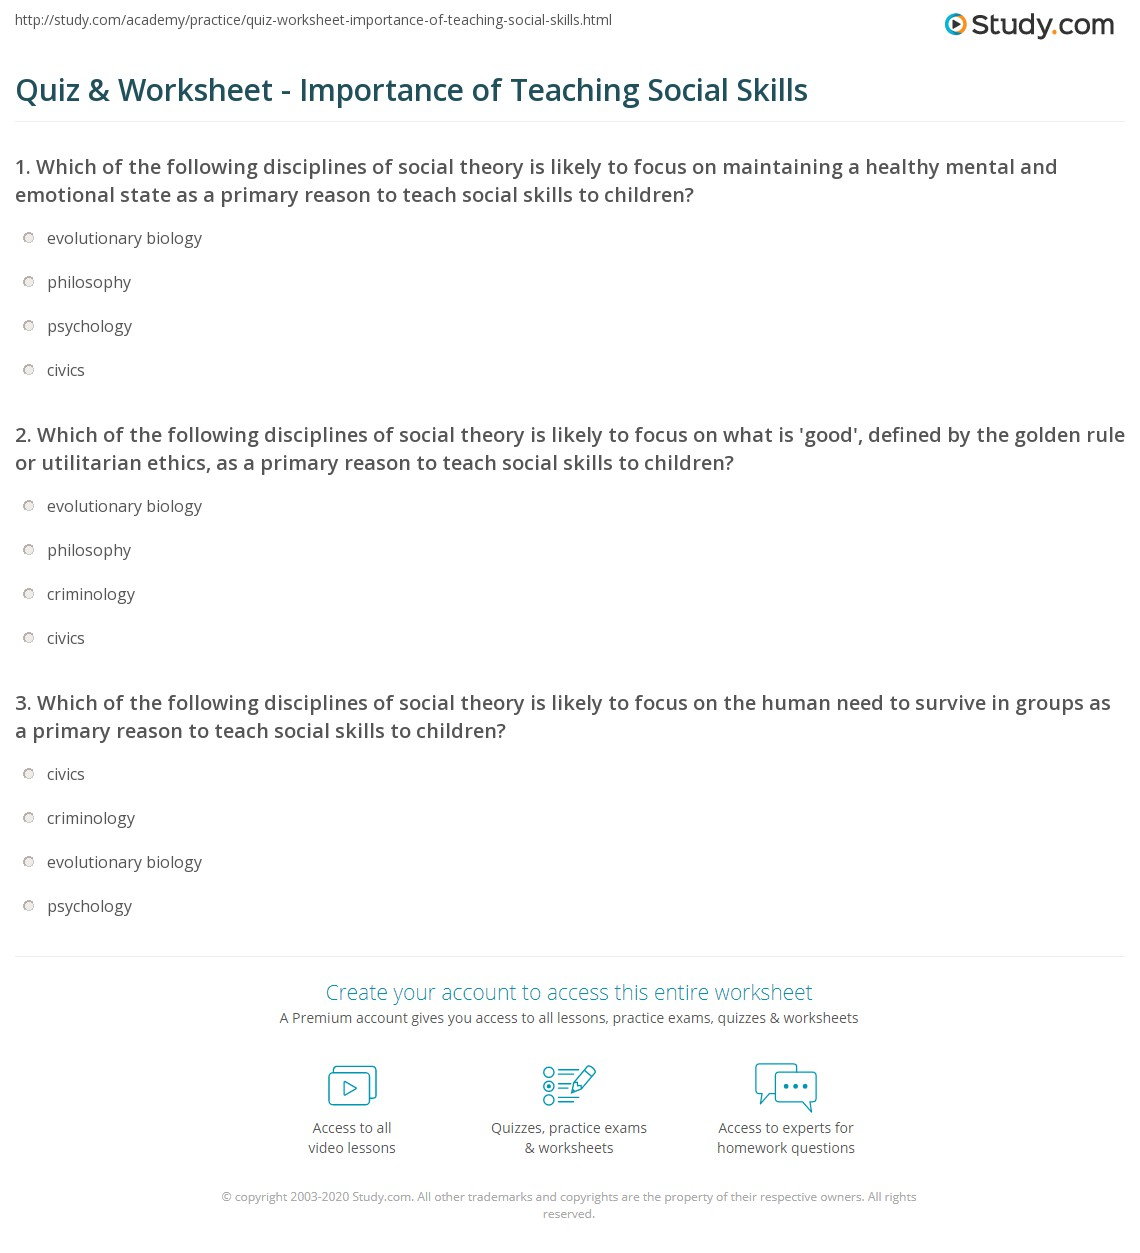 worksheet Social Skills Worksheet quiz worksheet importance of teaching social skills study com theory is likely to focus on what good defined by the golden rule or utilitarian ethics as a primary reason to